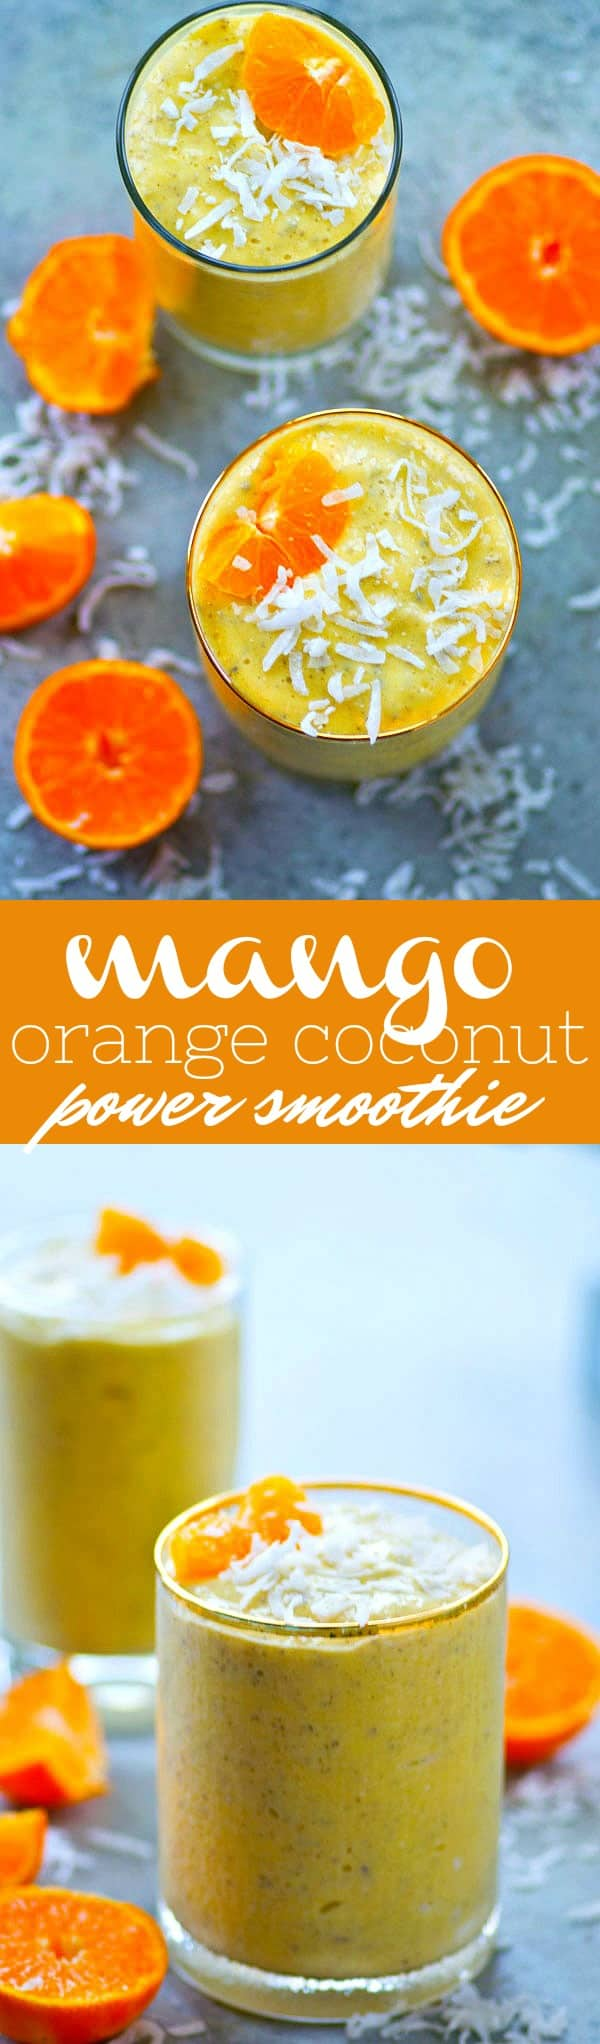 Packed with protein and all the tropical fixins', this mango orange coconut power smoothie is so filling its perfect for an on-the-go breakfast or post-workout snack!